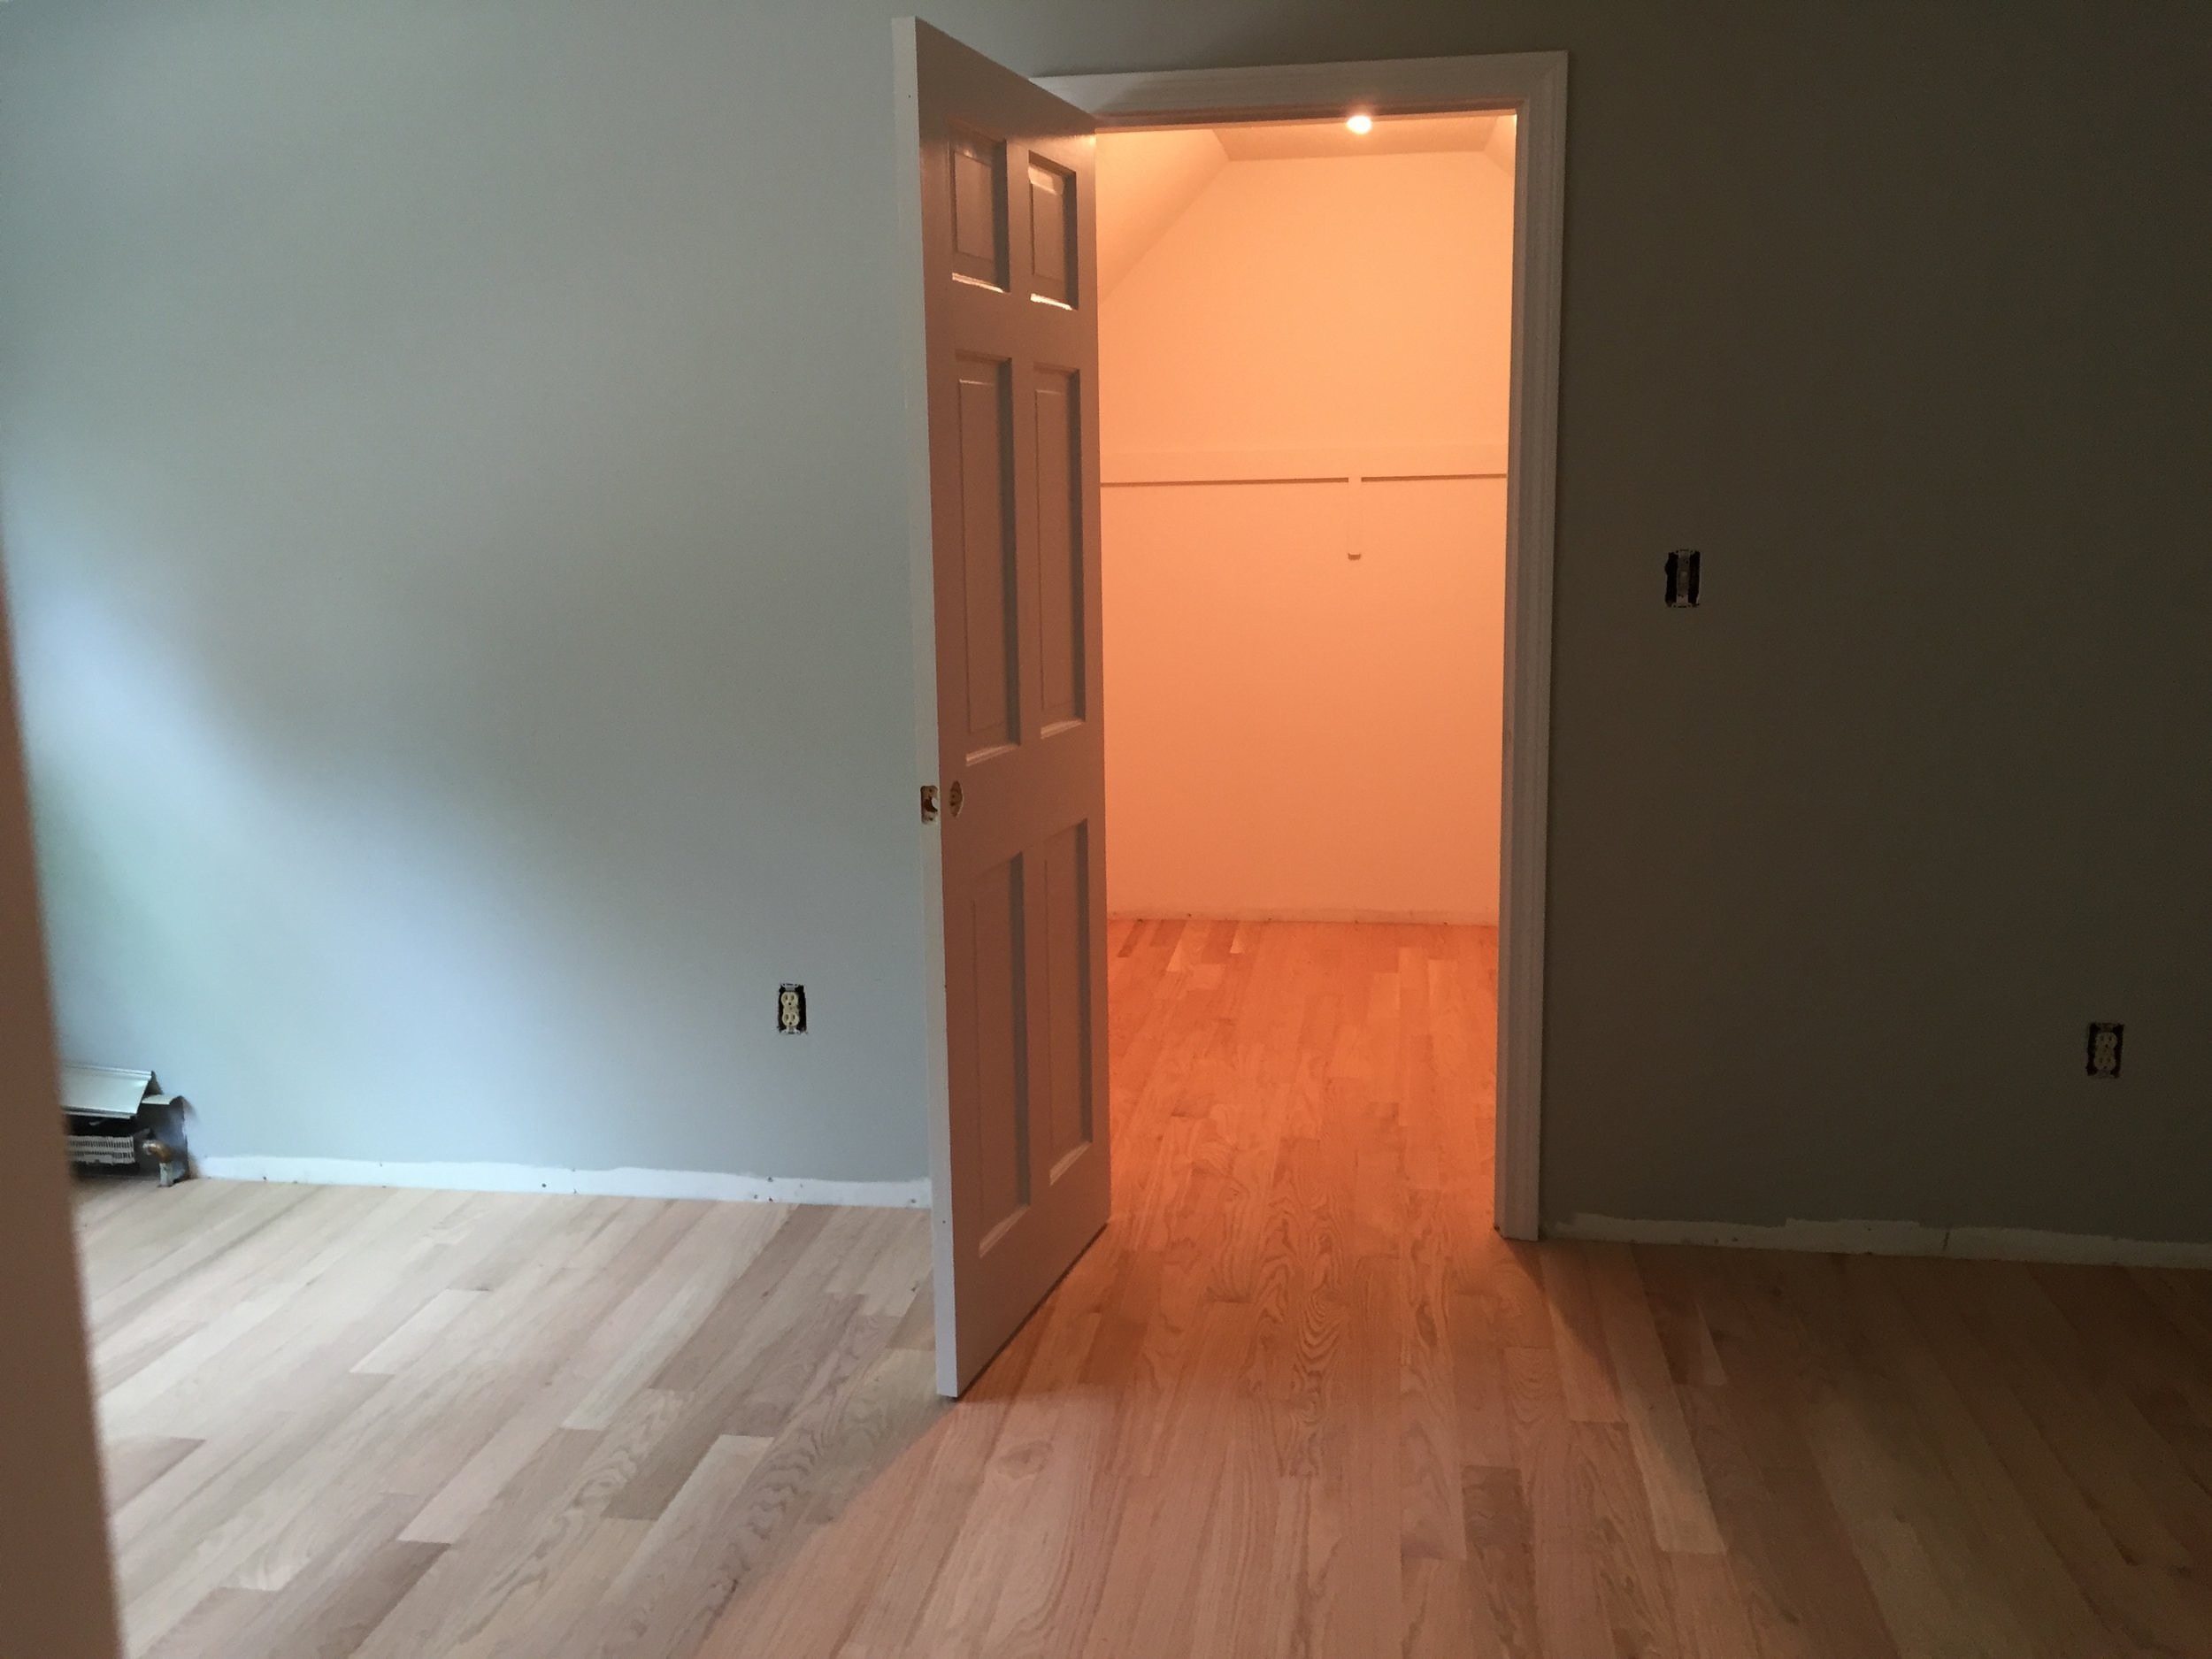 AFTER - Bedroom and closet with new red oak flooring installed (unstained)